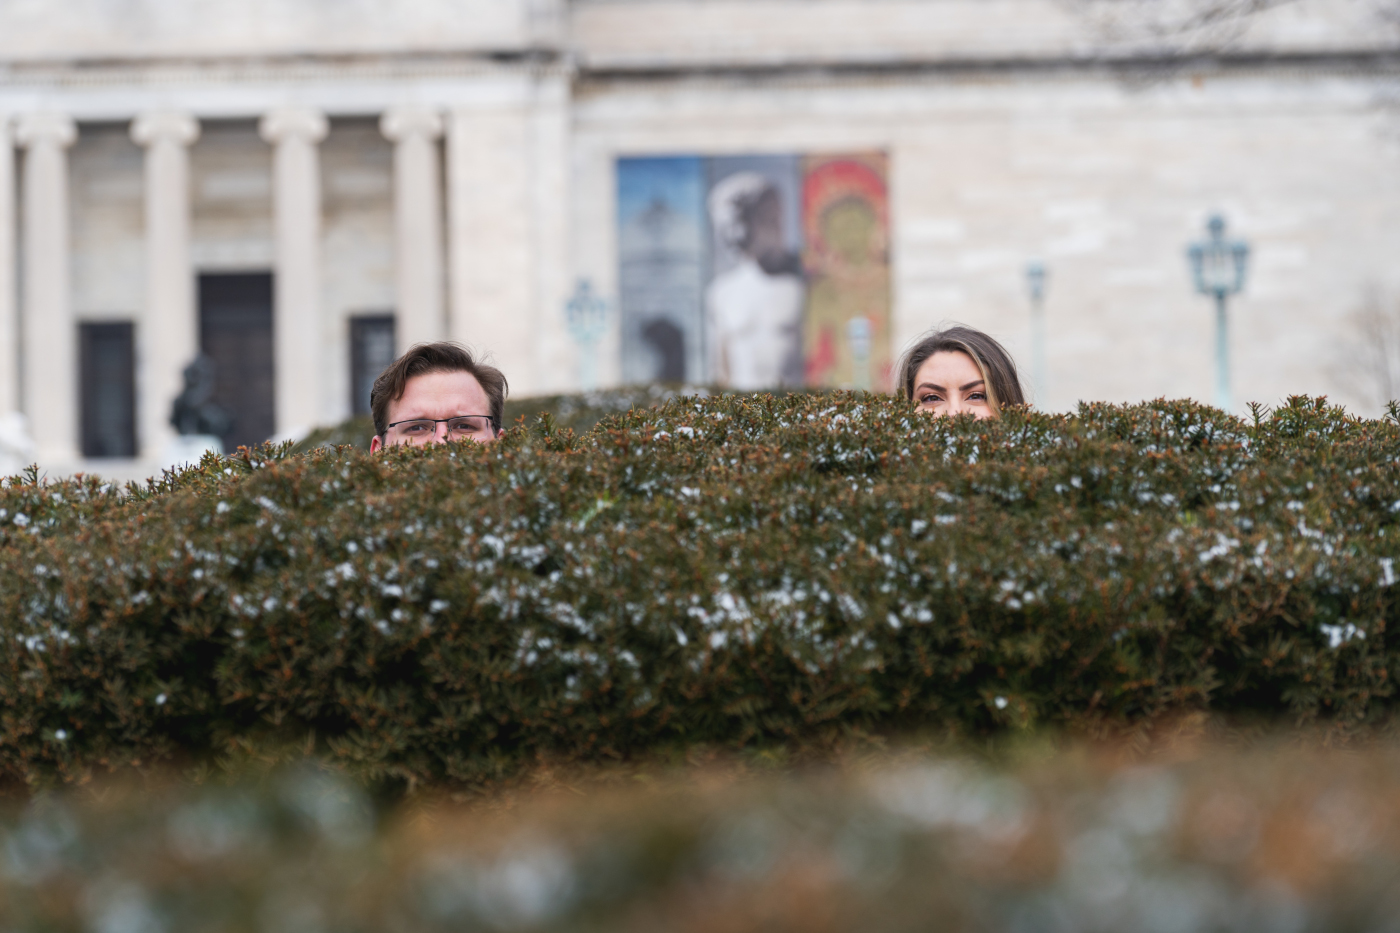 Eric + Kristyn Winter Engagement Session at the Cultural Gardens and The Art Museum